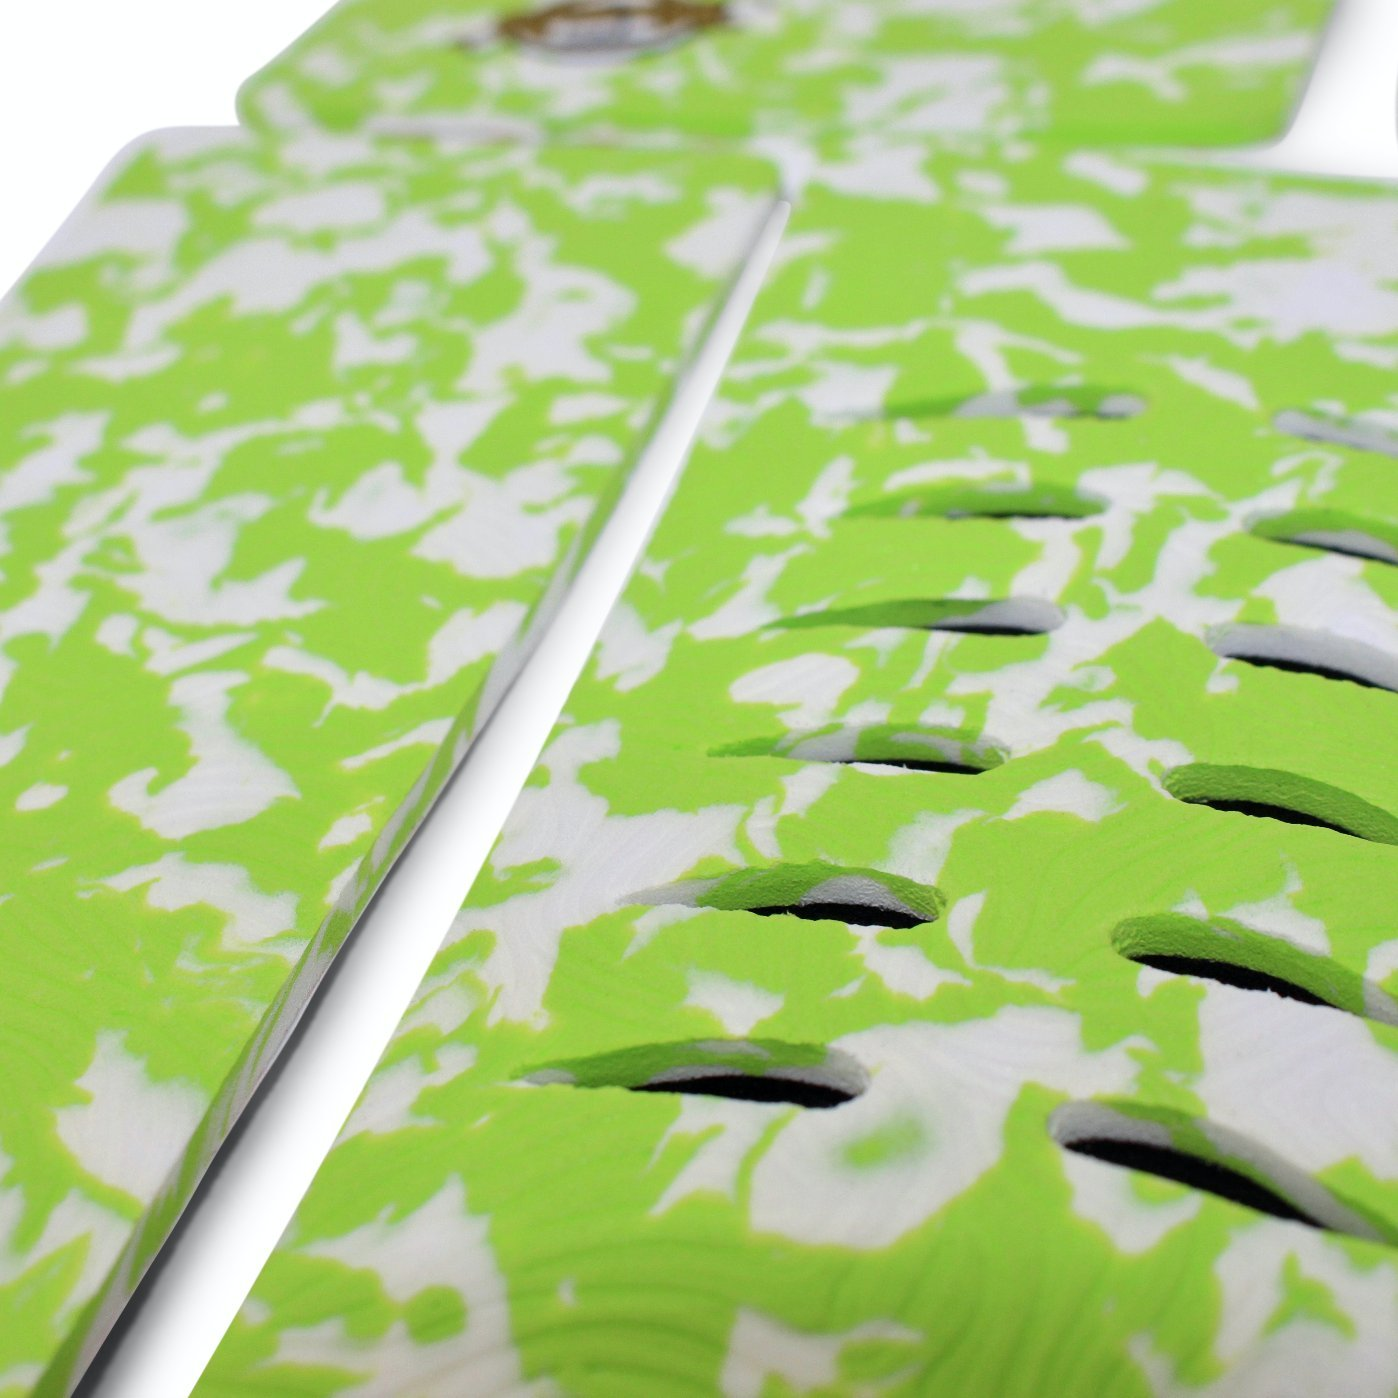 Stomp Pad 5 Piece Stomp Pads Traction Pads For Surfboard Skimboards Longboards